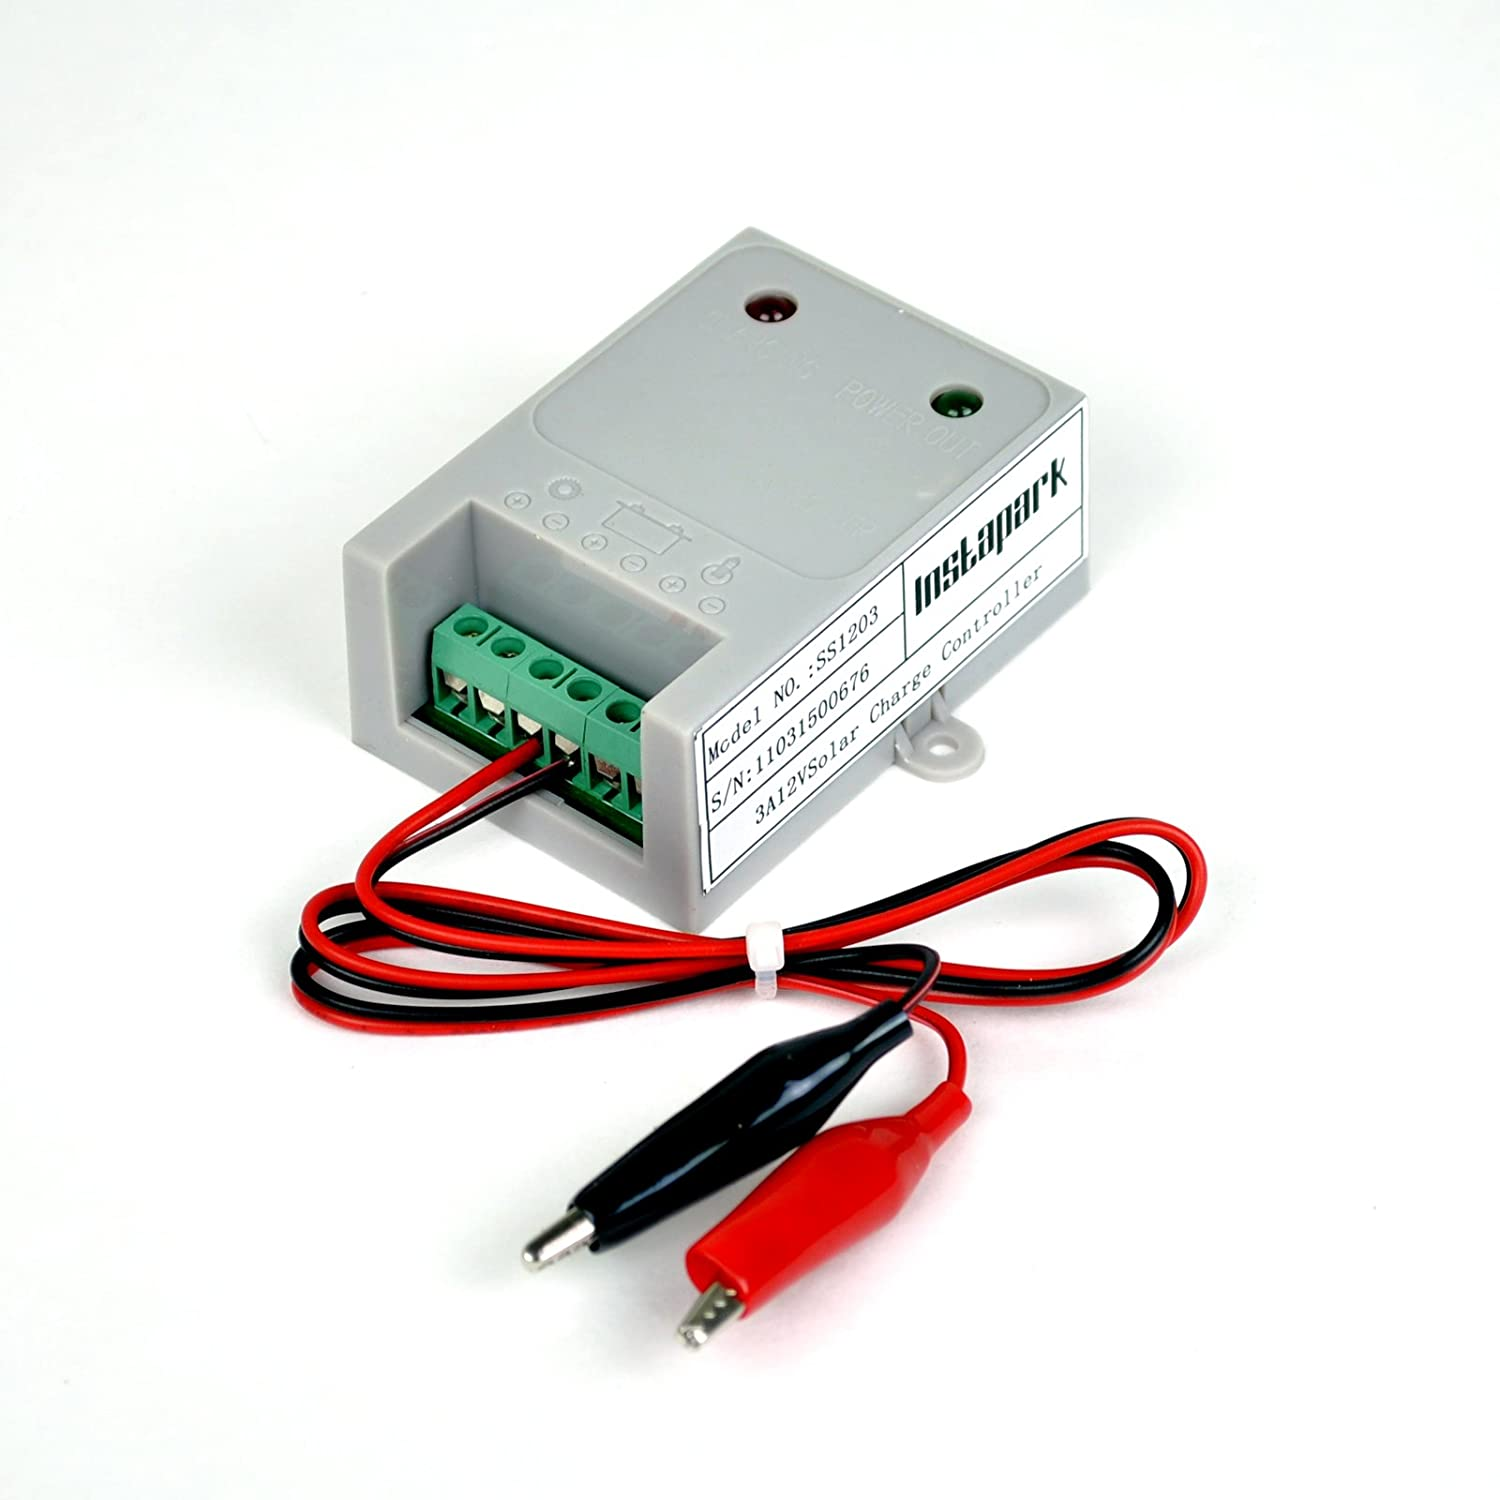 Instapark Ss1203 3amp Solar Power Charge Controller 45 6v 12v 27a 3step Lead Acid Battery Charger Car Watt At Electronics